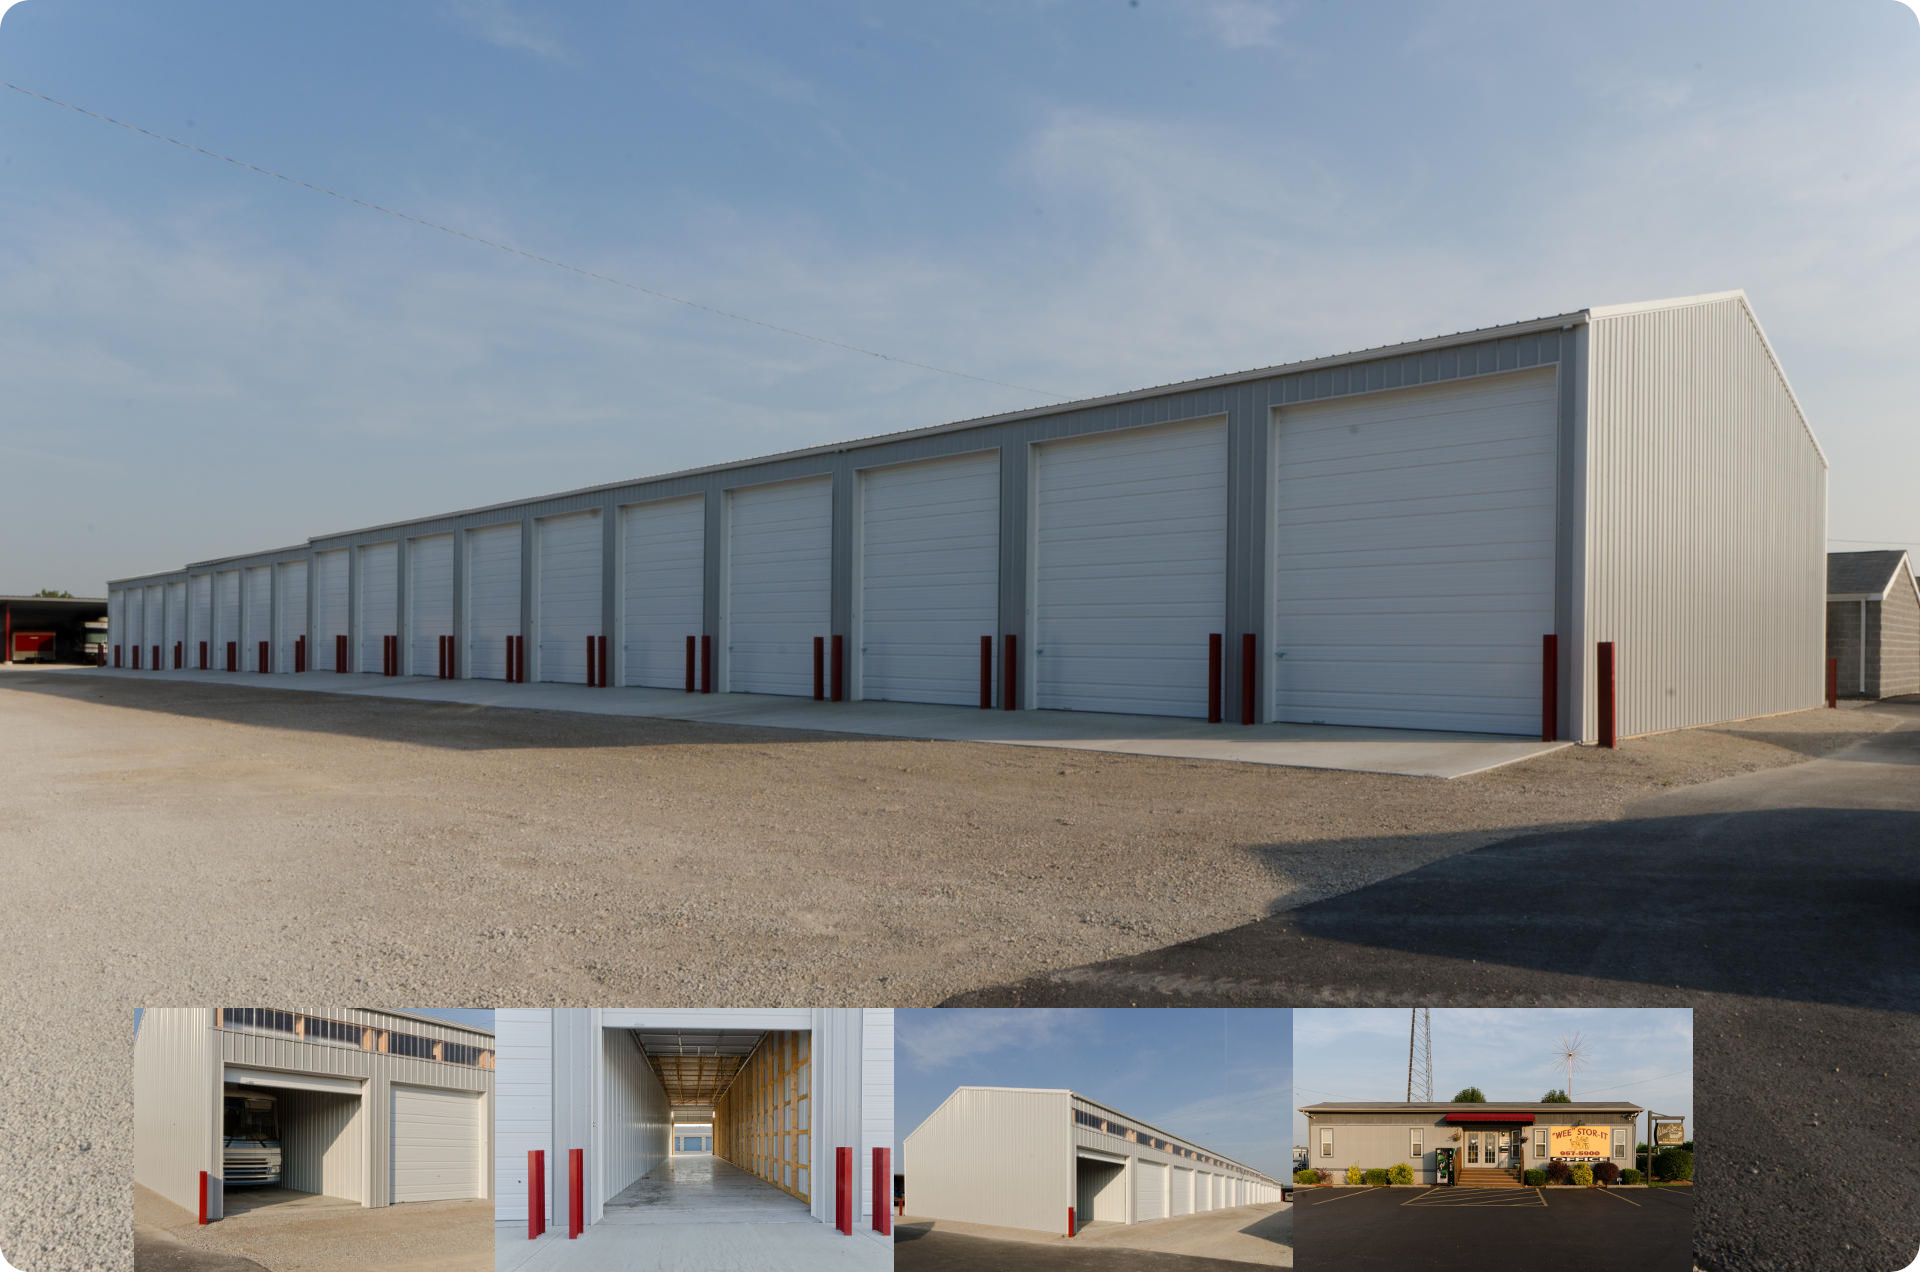 RV Storage Buildings Building 18 Bays